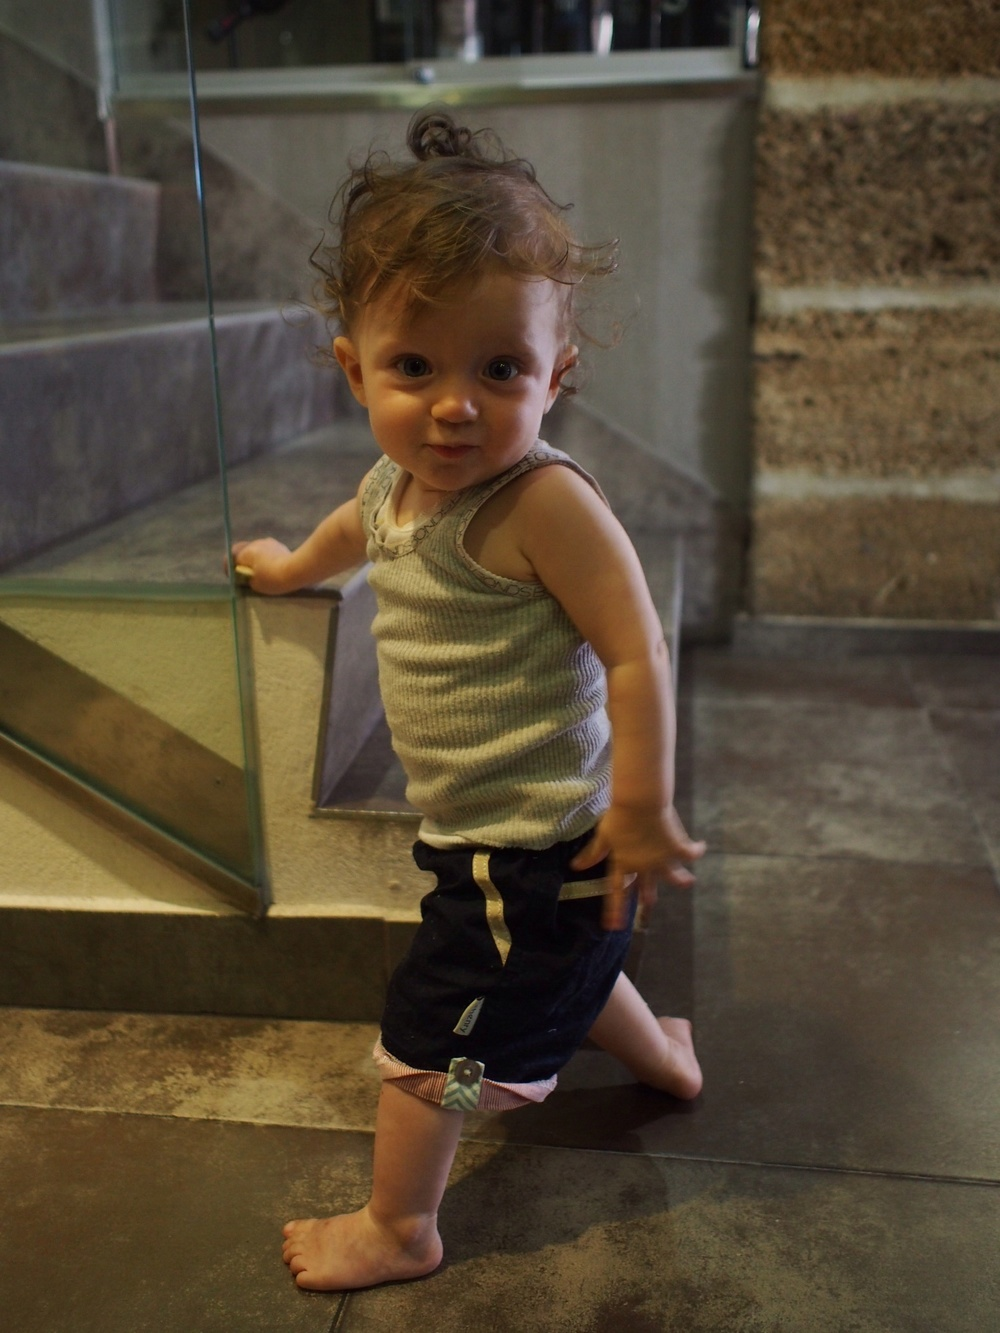 I am going to miss this little 'gangsterinspain' grandchild of mine.